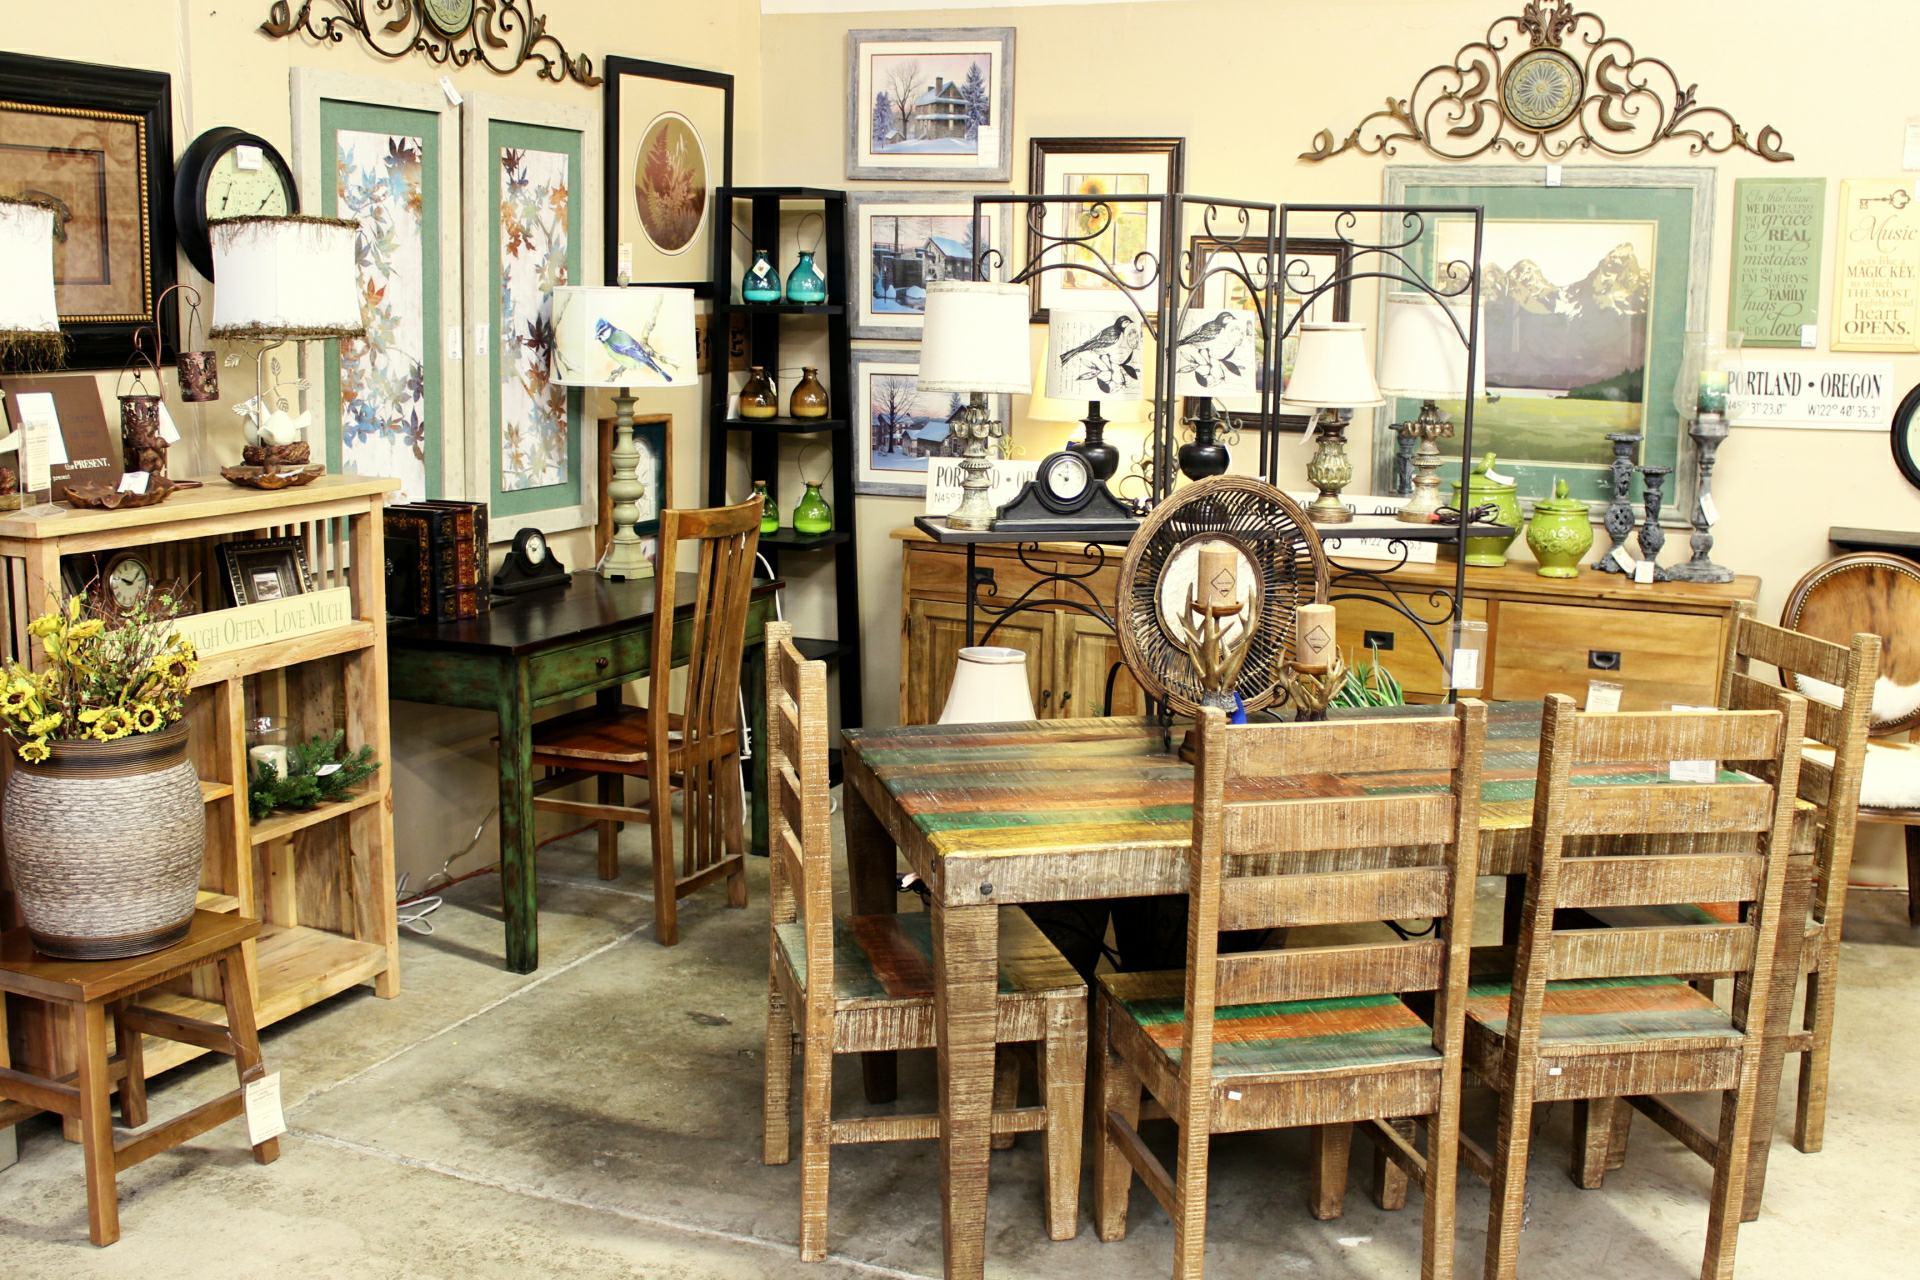 Upscale Consignment Furniture & Decor second image